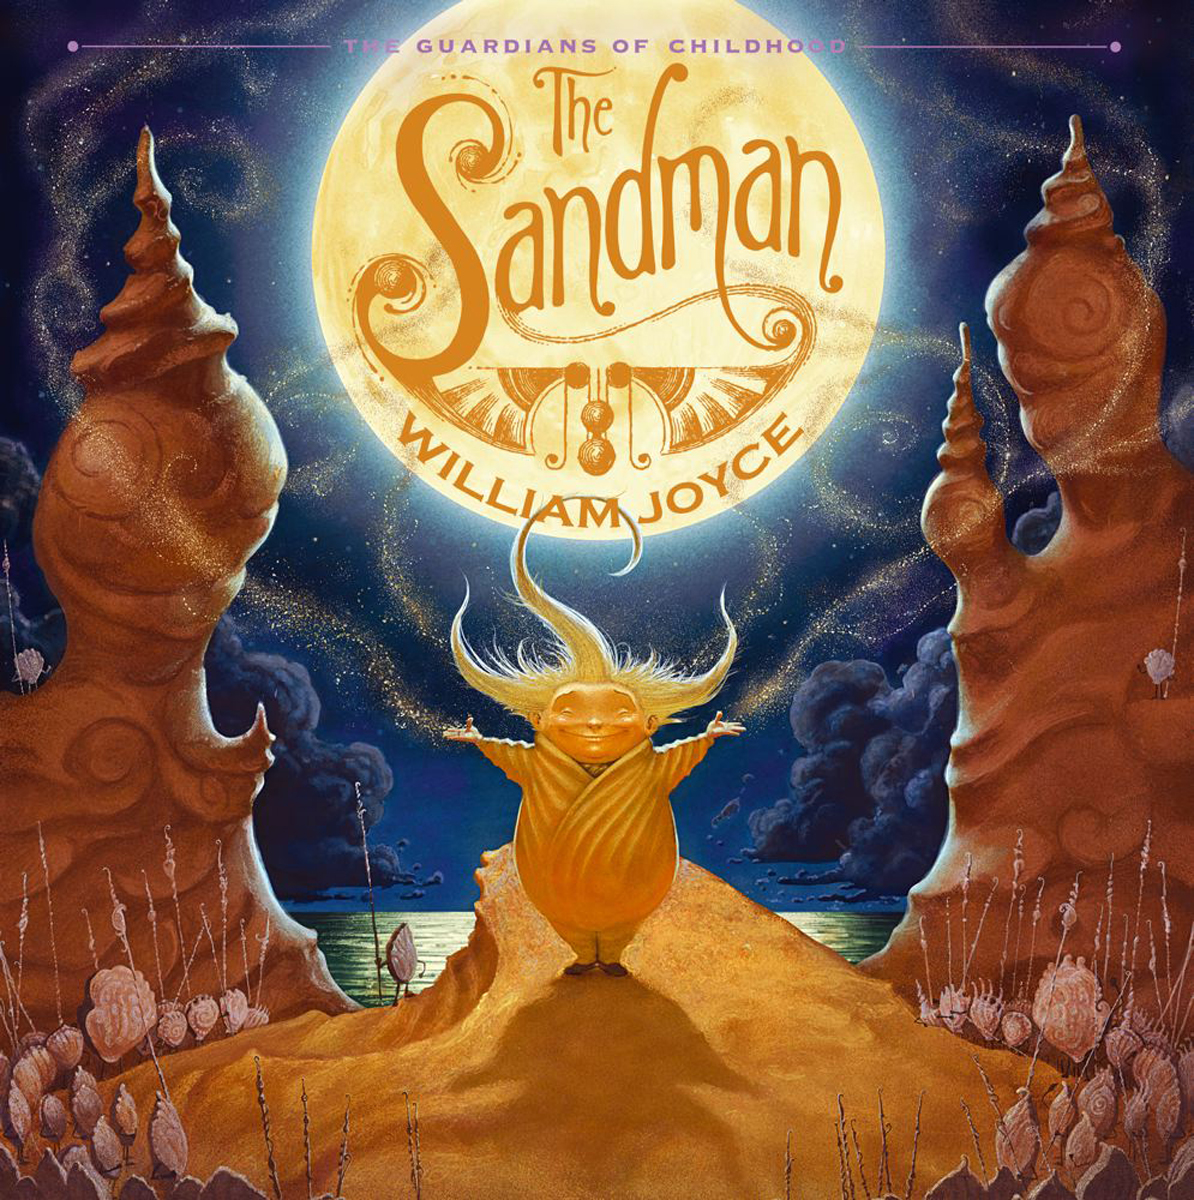 The Sandman by William Joyce - book review - MySF Reviews